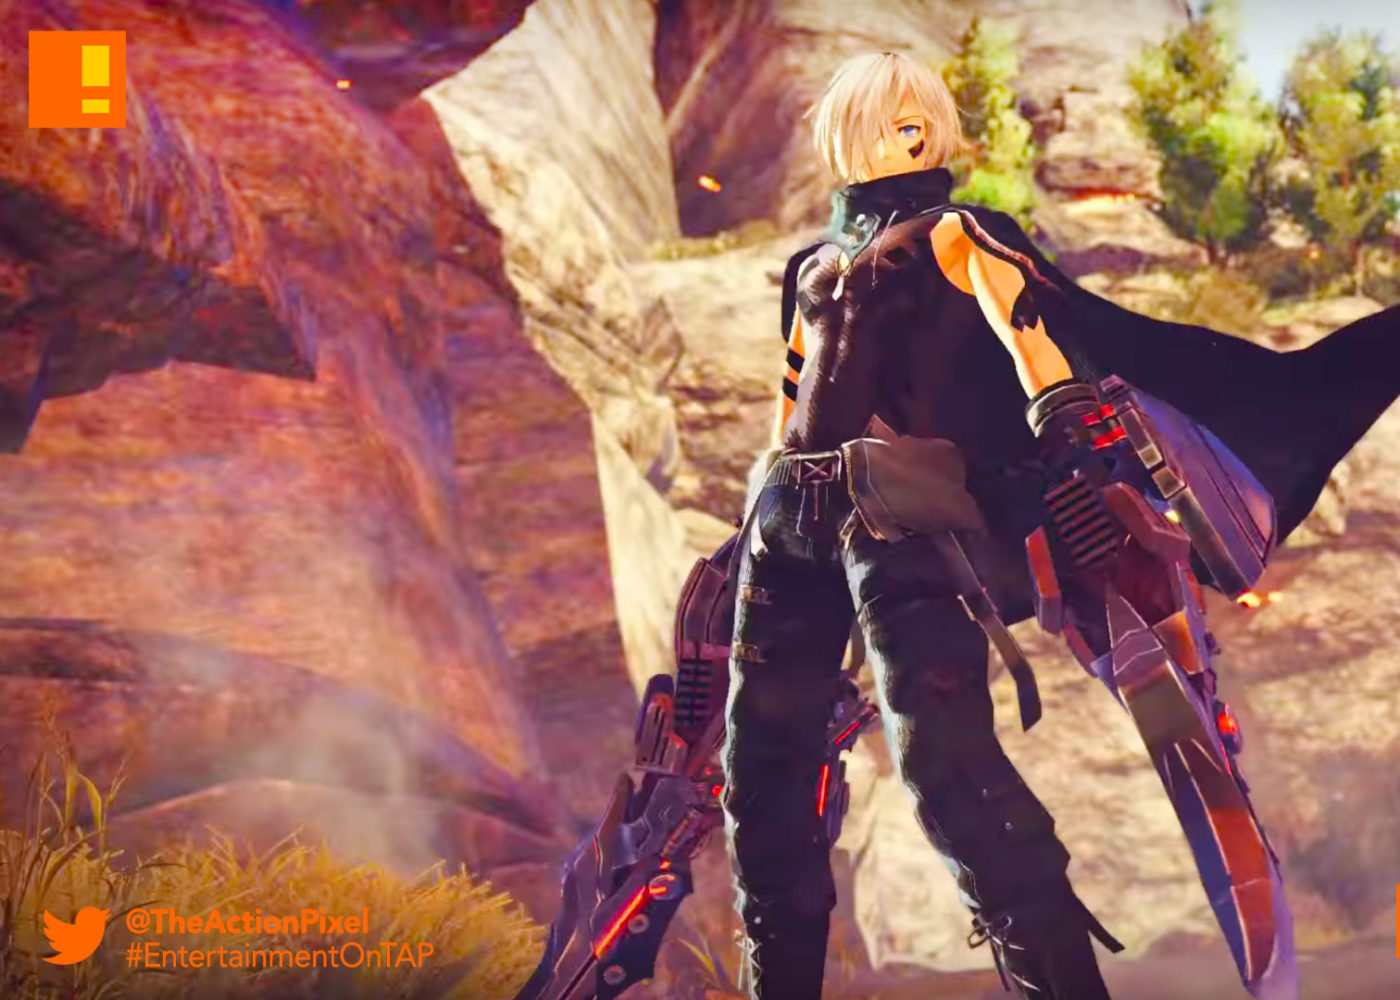 godeater 3, godeater, god eater 3, the action pixel, entertainment on tap,god arc,bandai namco, aragami, bandai namco entertainment, the action pixel, entertainment on tap,